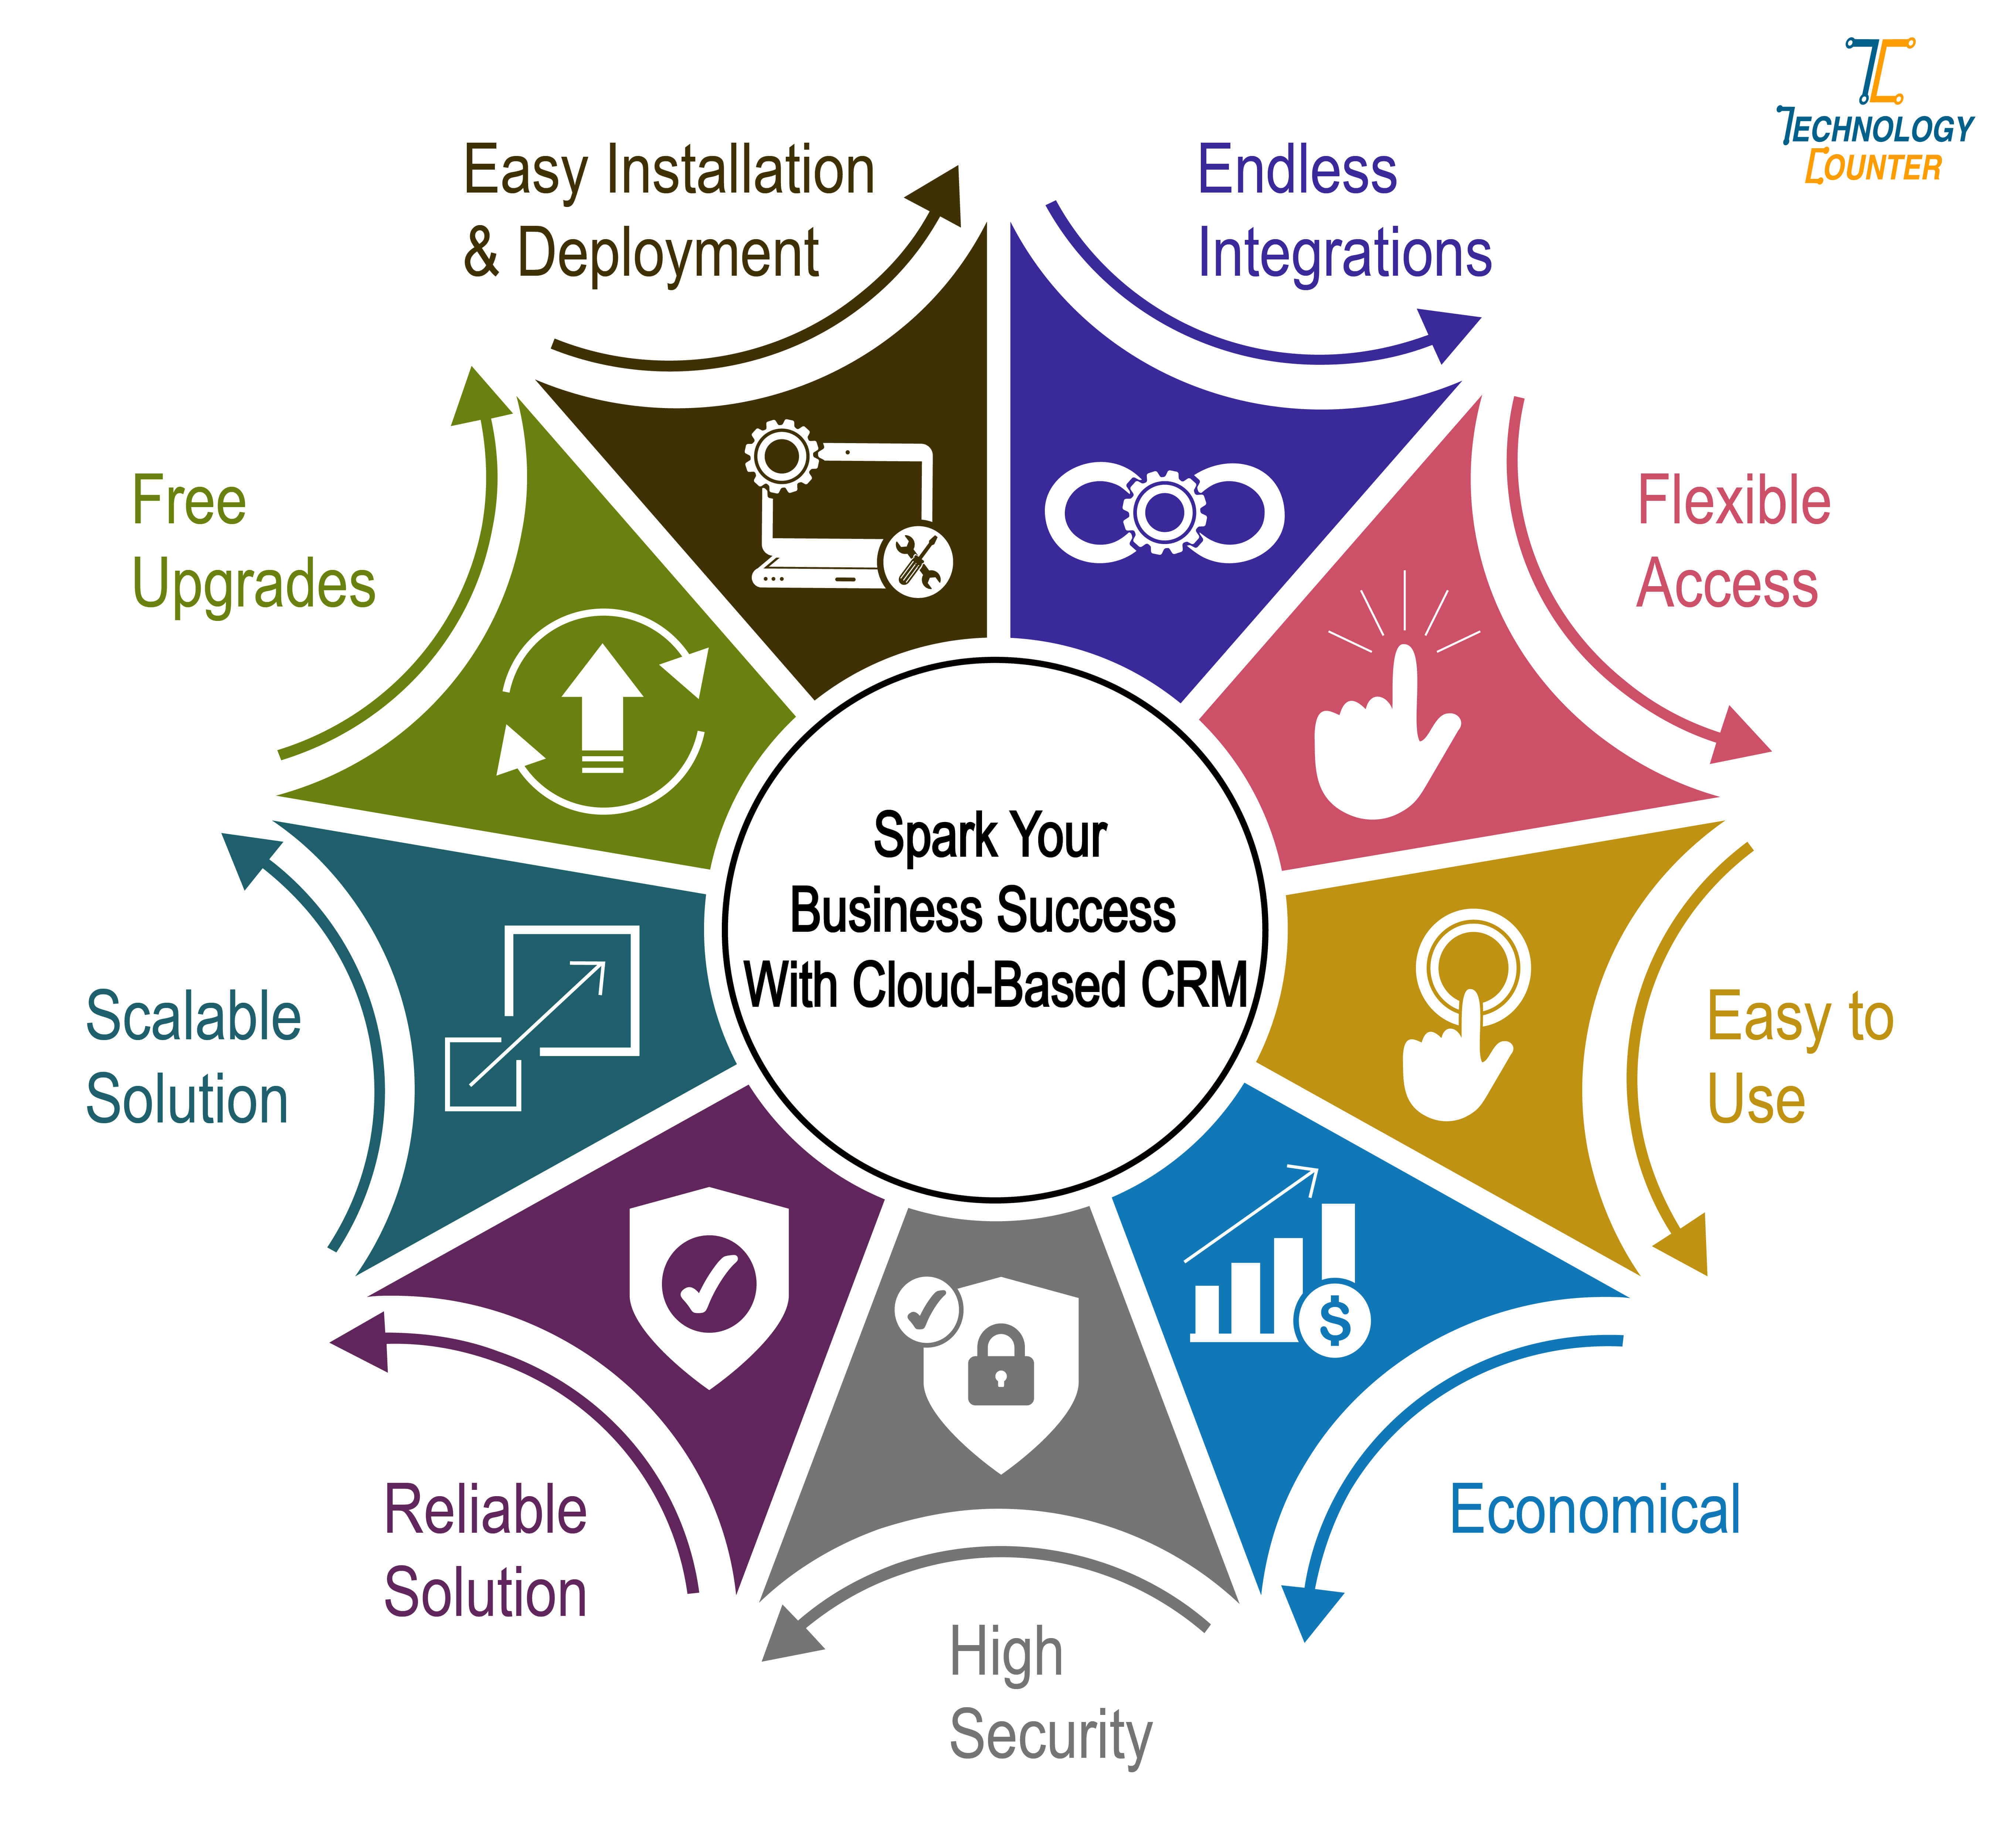 Spark your business success with cloud-based CRM